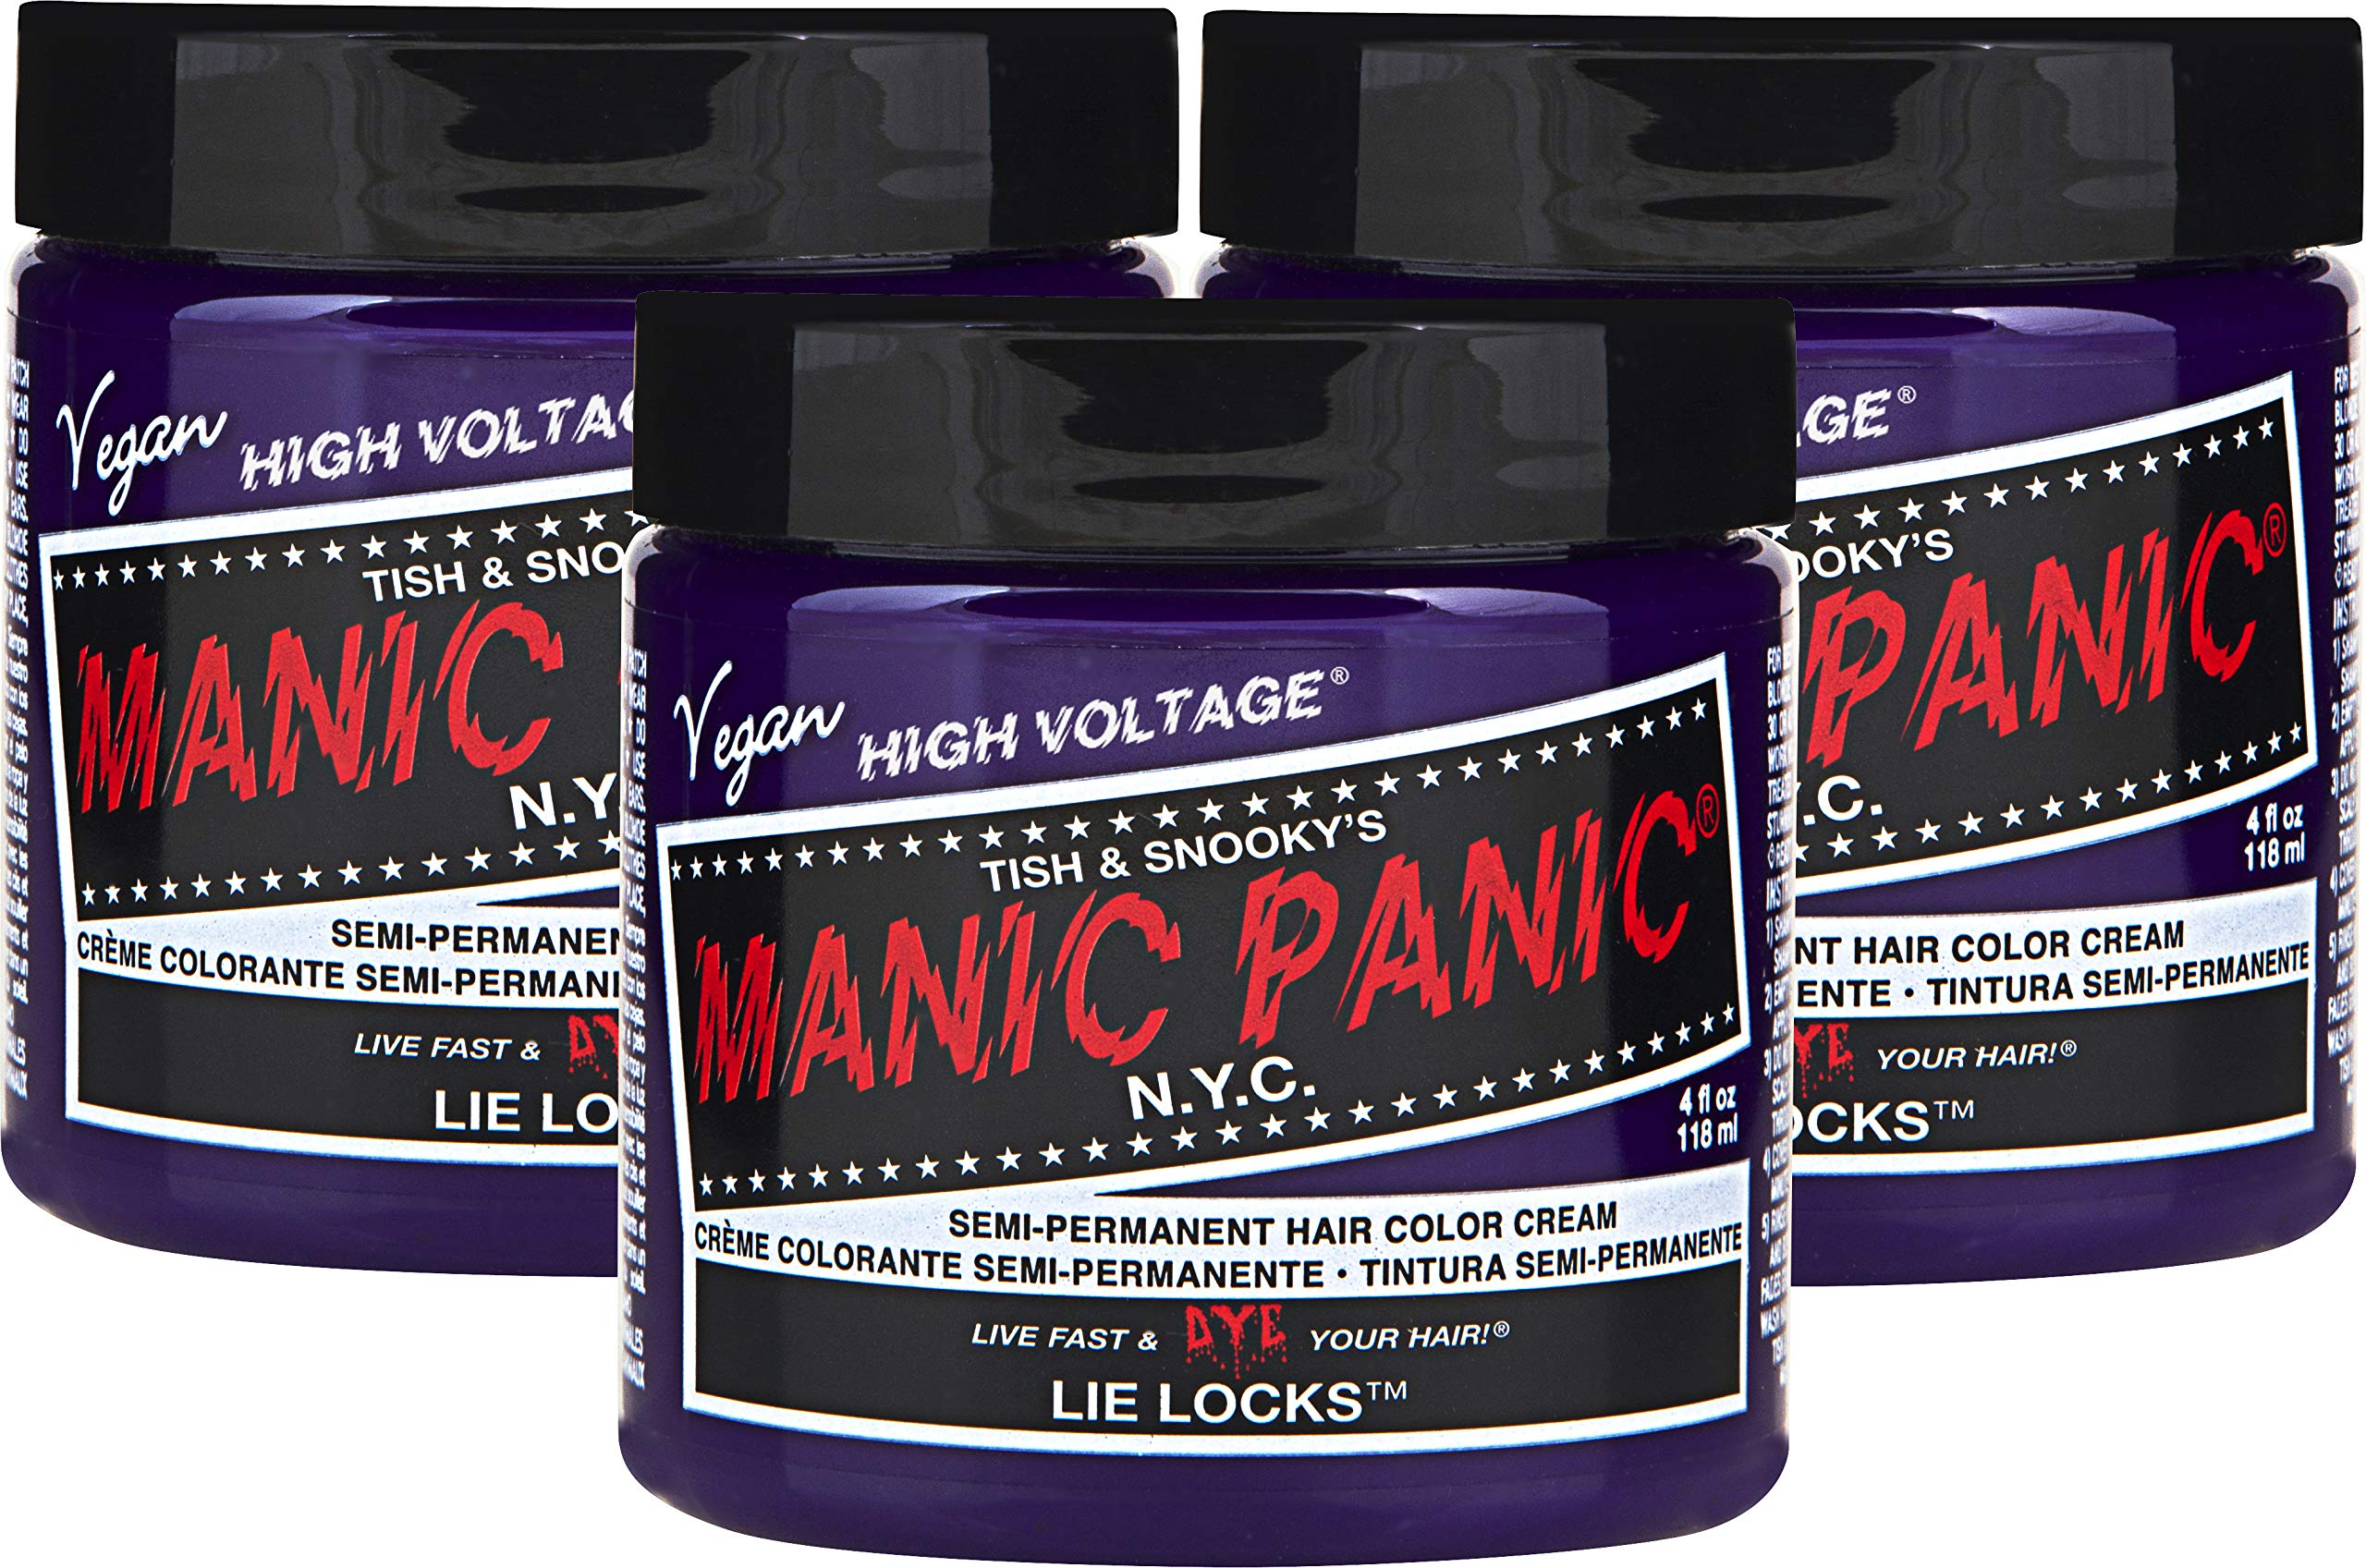 Manic Panic Lie Locks Purple Hair Color Cream (3-Pack) Classic High Voltage Semi-Permanent Hair Dye - Vivid, Purple Shade For Dark or Light Hair. Vegan, PPD & Ammonia-Free Ready-to-Use No-Mix Coloring by MANIC PANIC